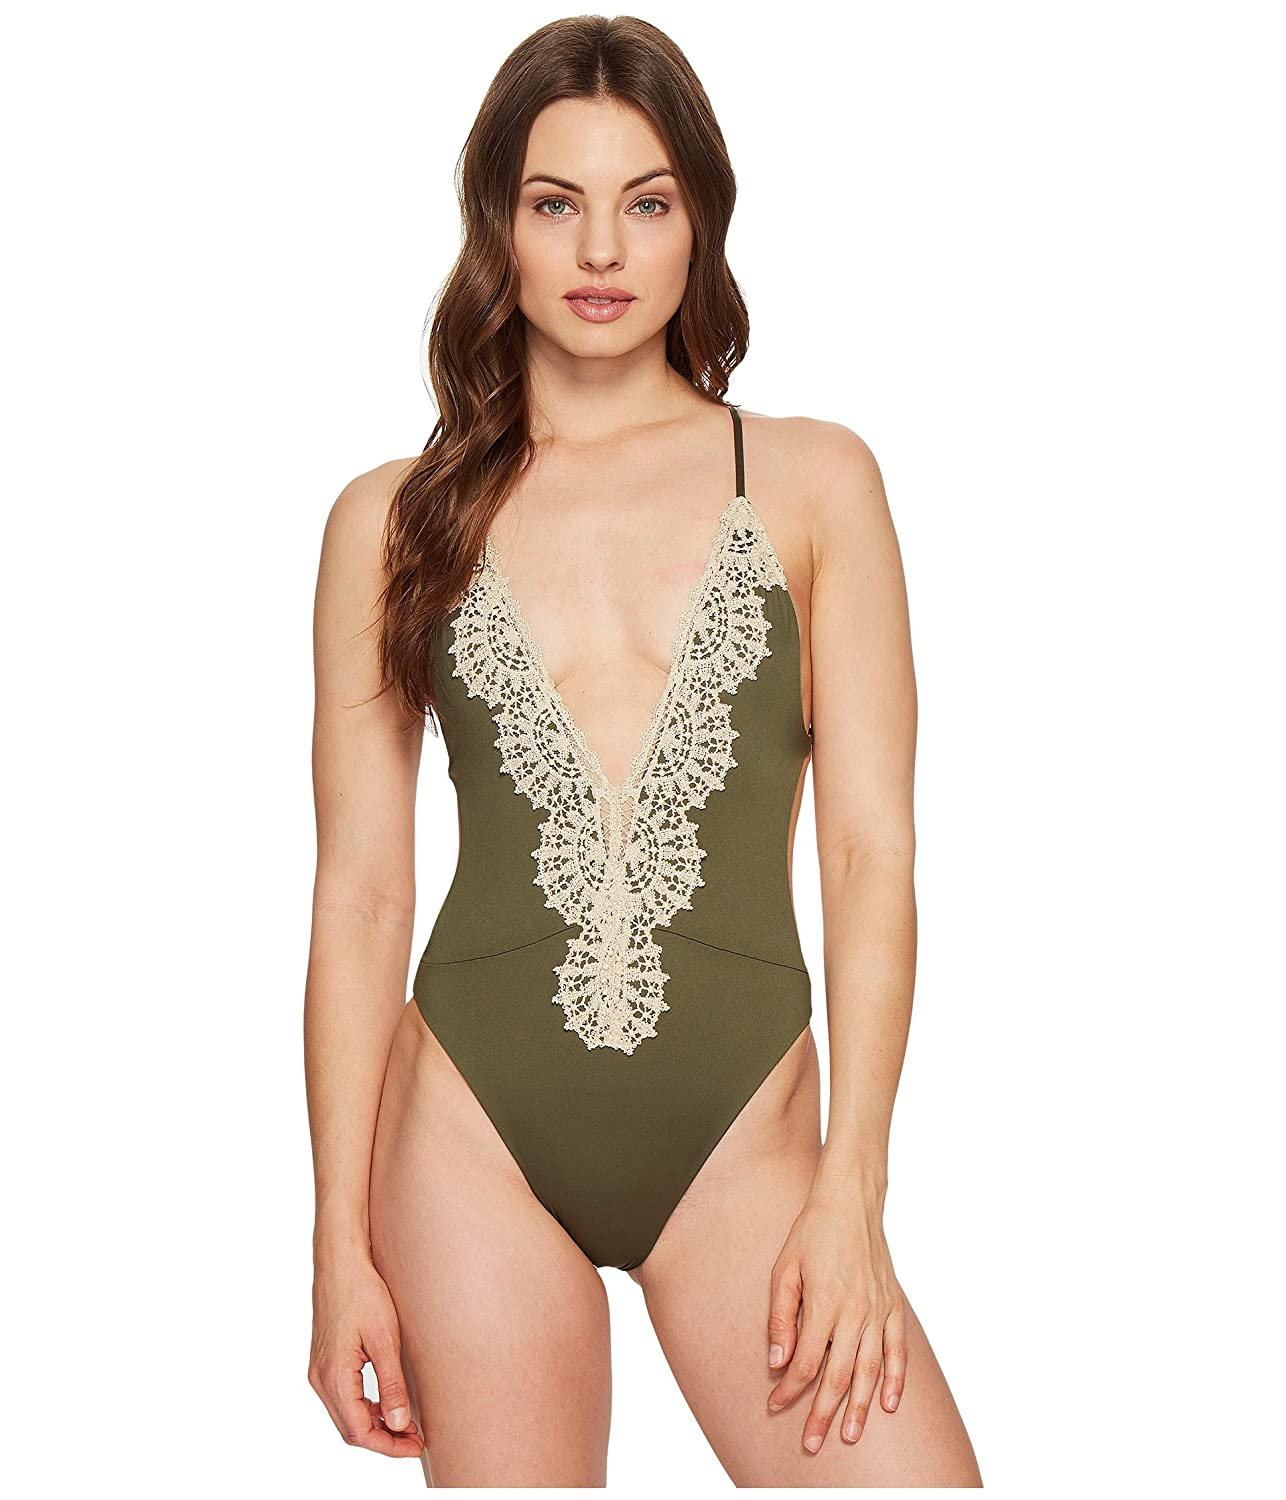 d95b59910b8 Blue Life Eclipse One Piece Swim Suit Fern (SM) at Amazon Women's Clothing  store: